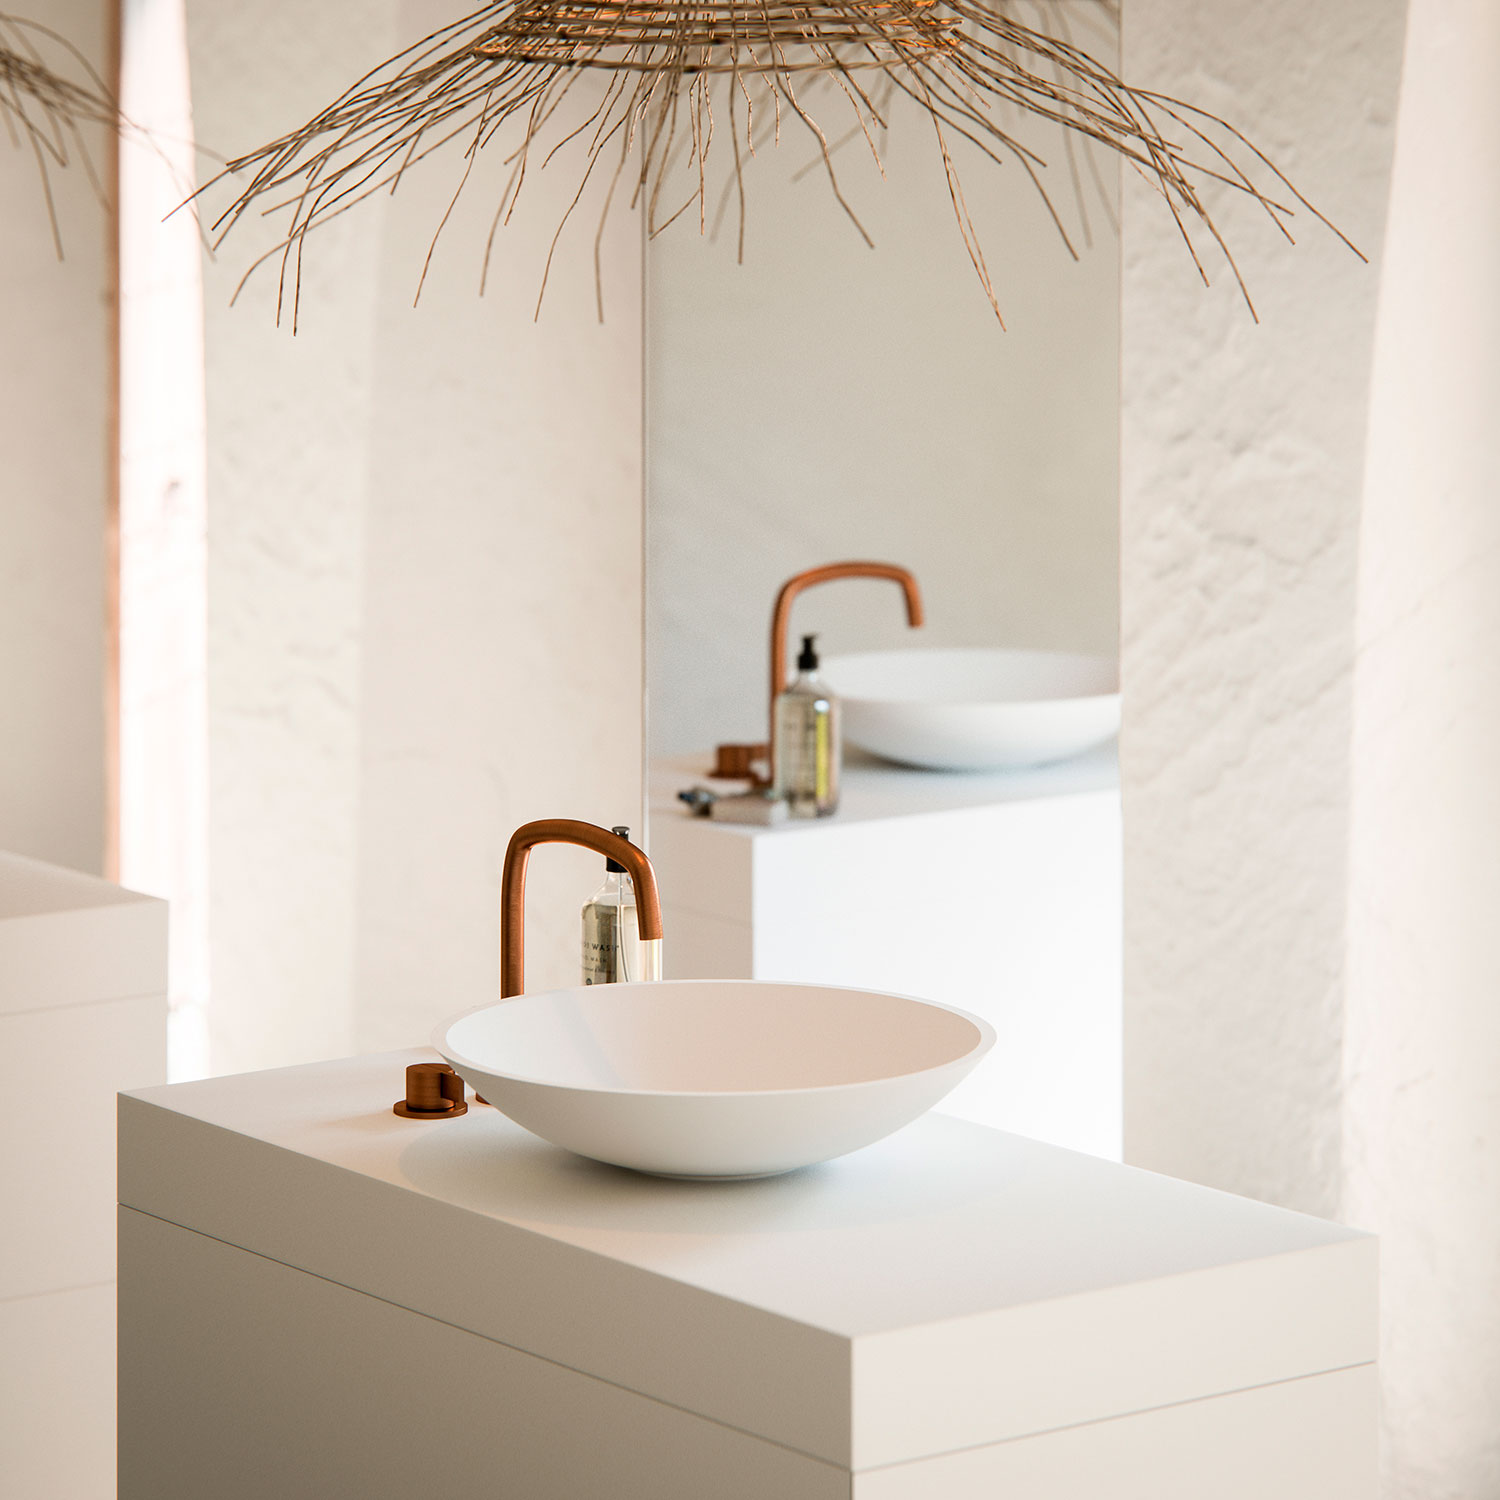 Modern Bathroom Design ByCOCOON